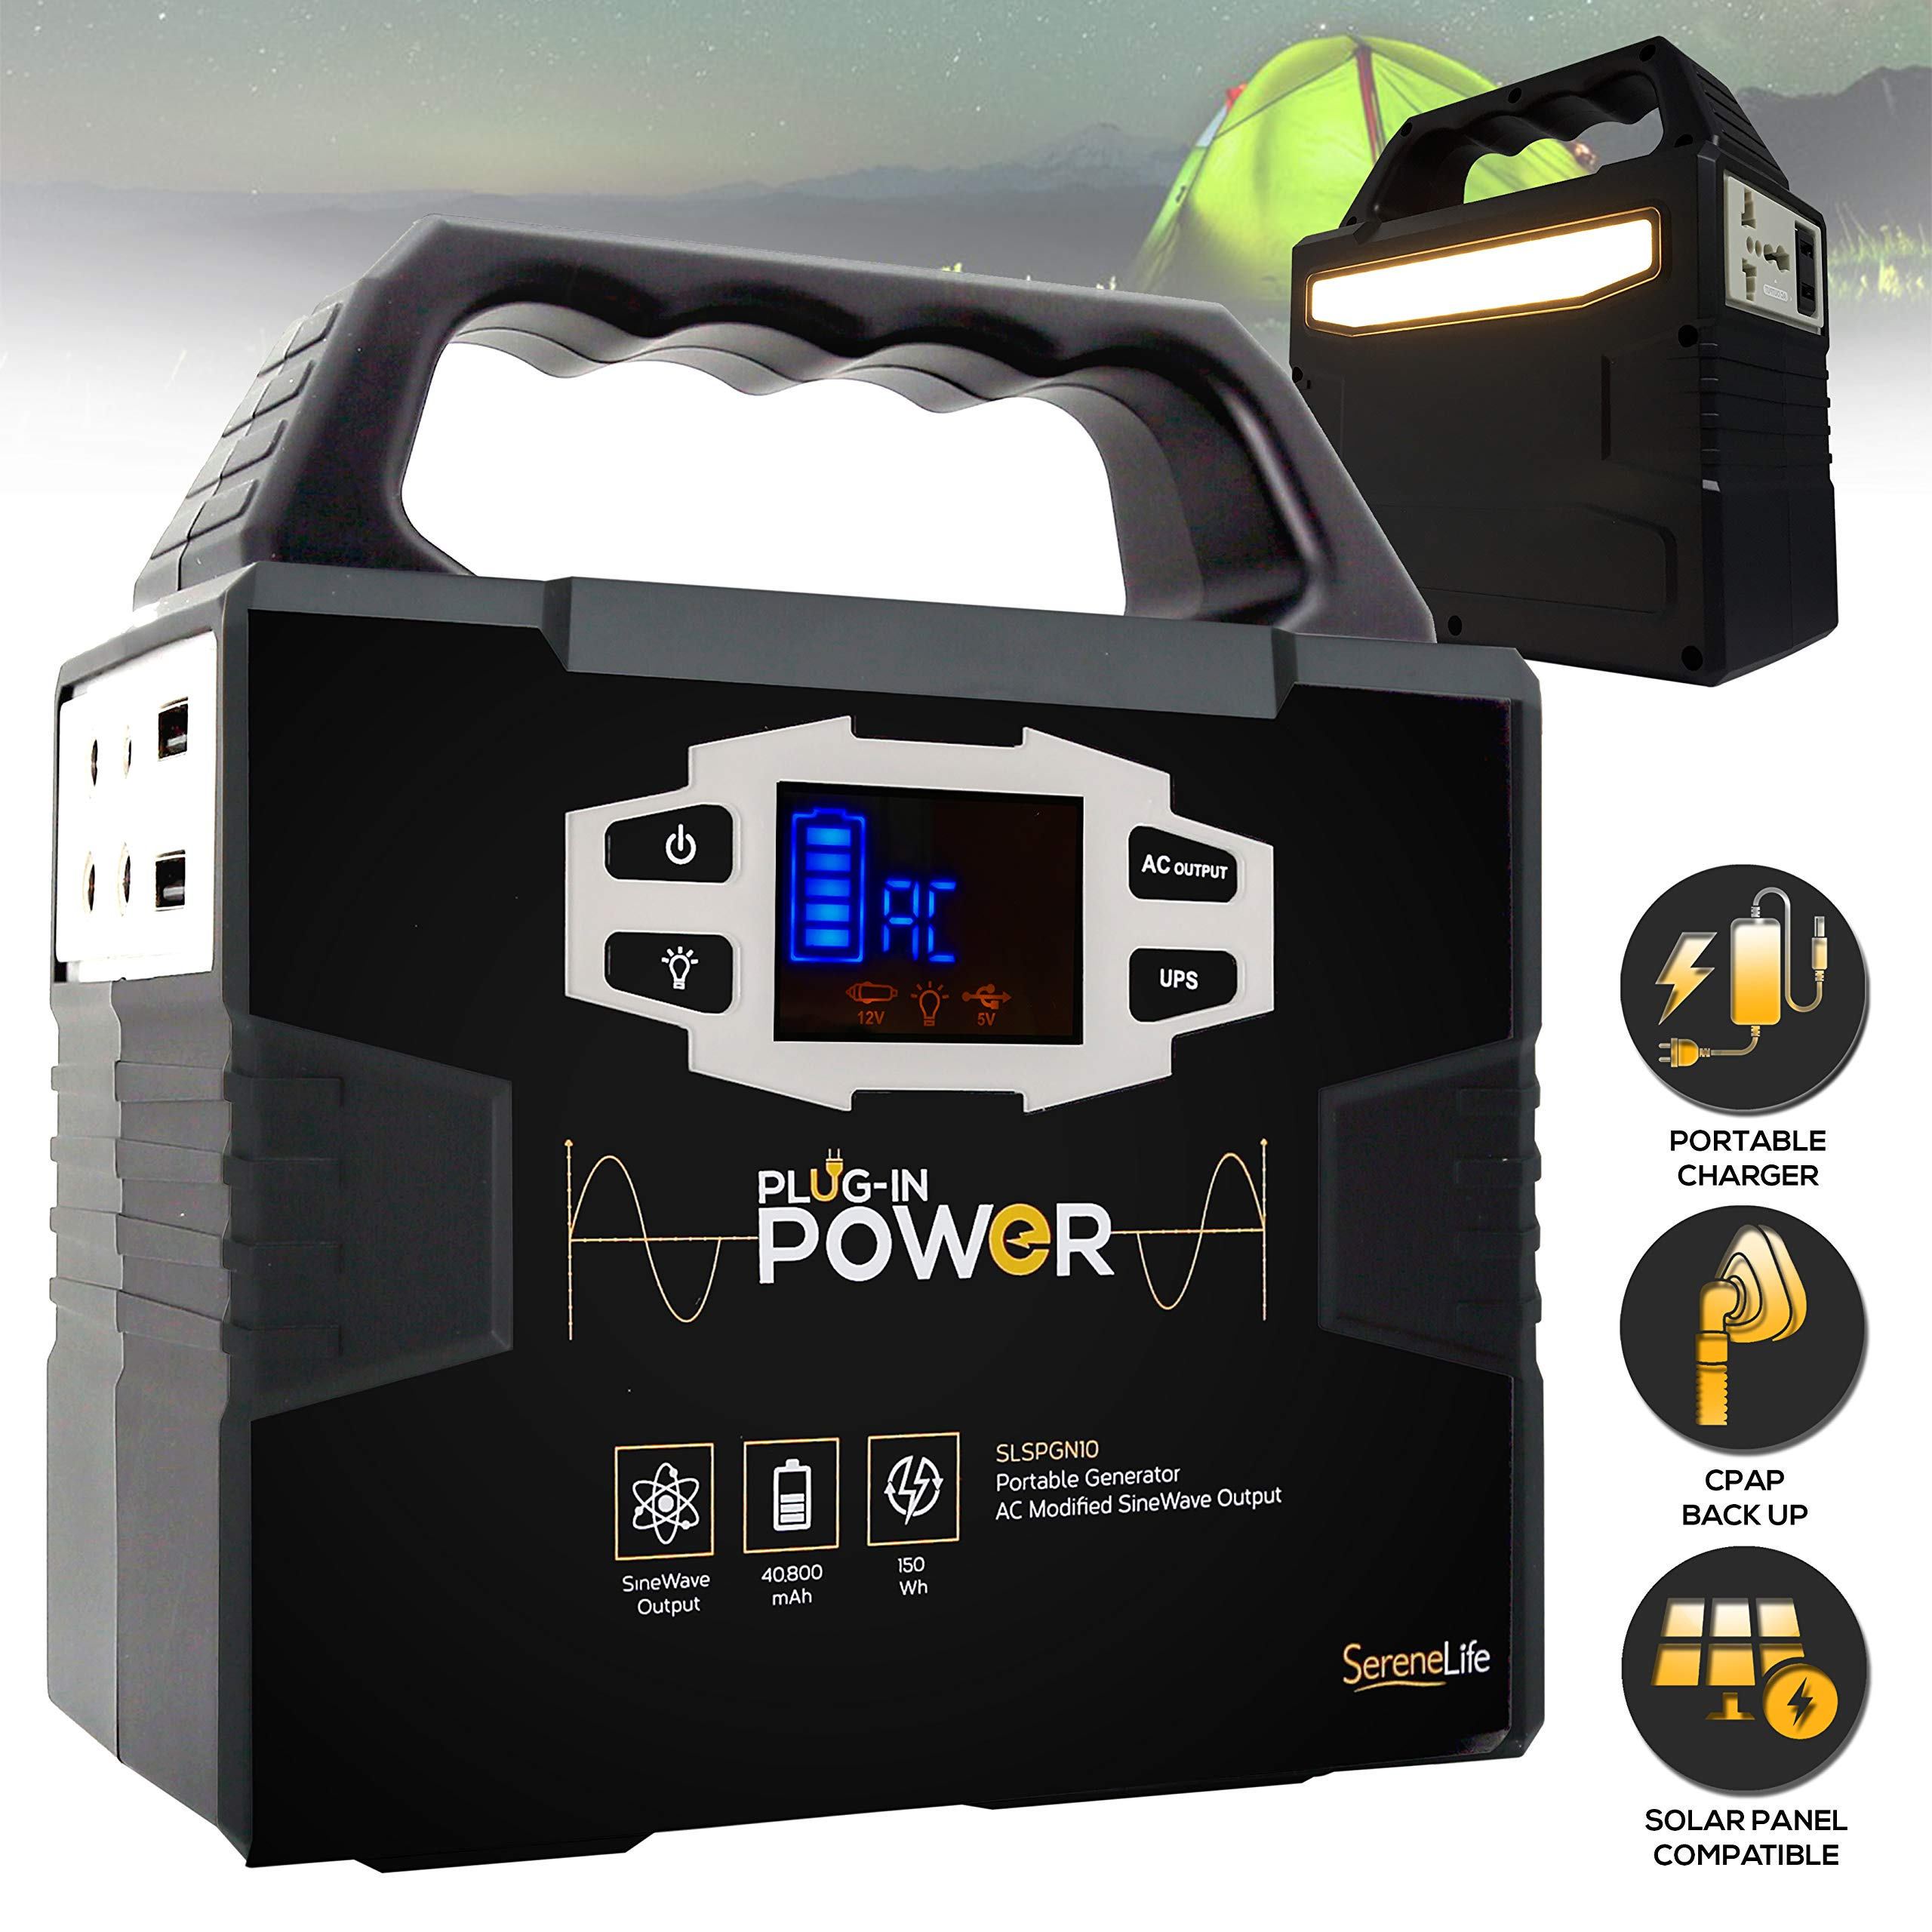 SereneLife Portable Generator, 150Wh Power Station, Quiet Gas Free Power Inverter, CPAP Battery Pack, Charged by Solar Panel/Wall Outlet/Car with 110V AC Outlet,3 DC 12V, USB Port by SereneLife